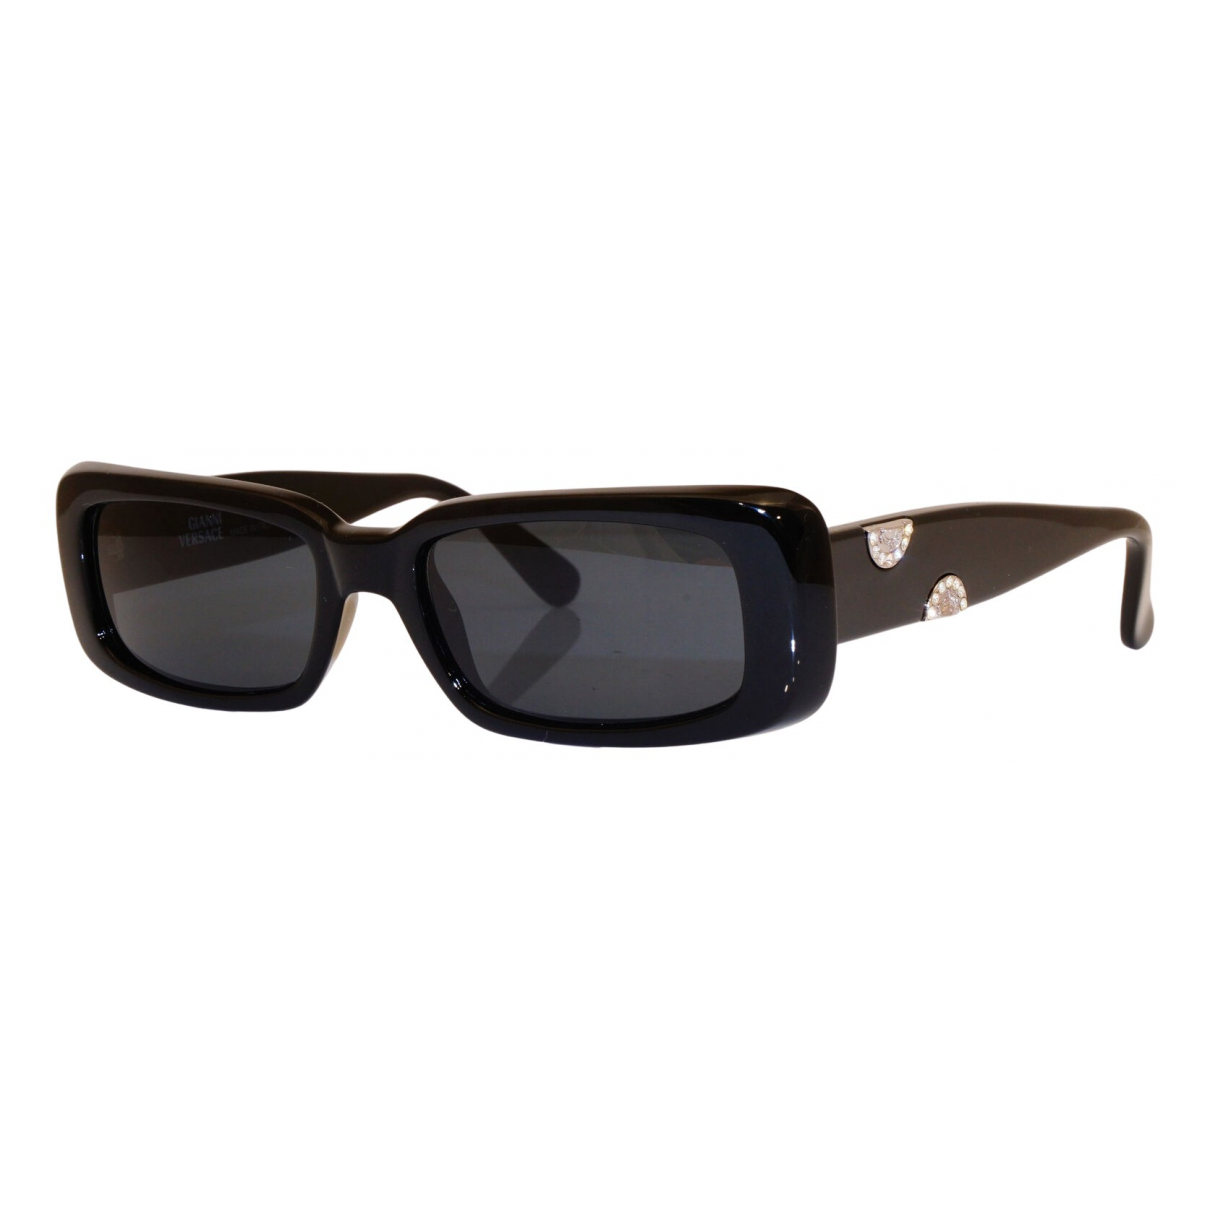 Gianni Versace - Lunettes   pour homme - anthracite